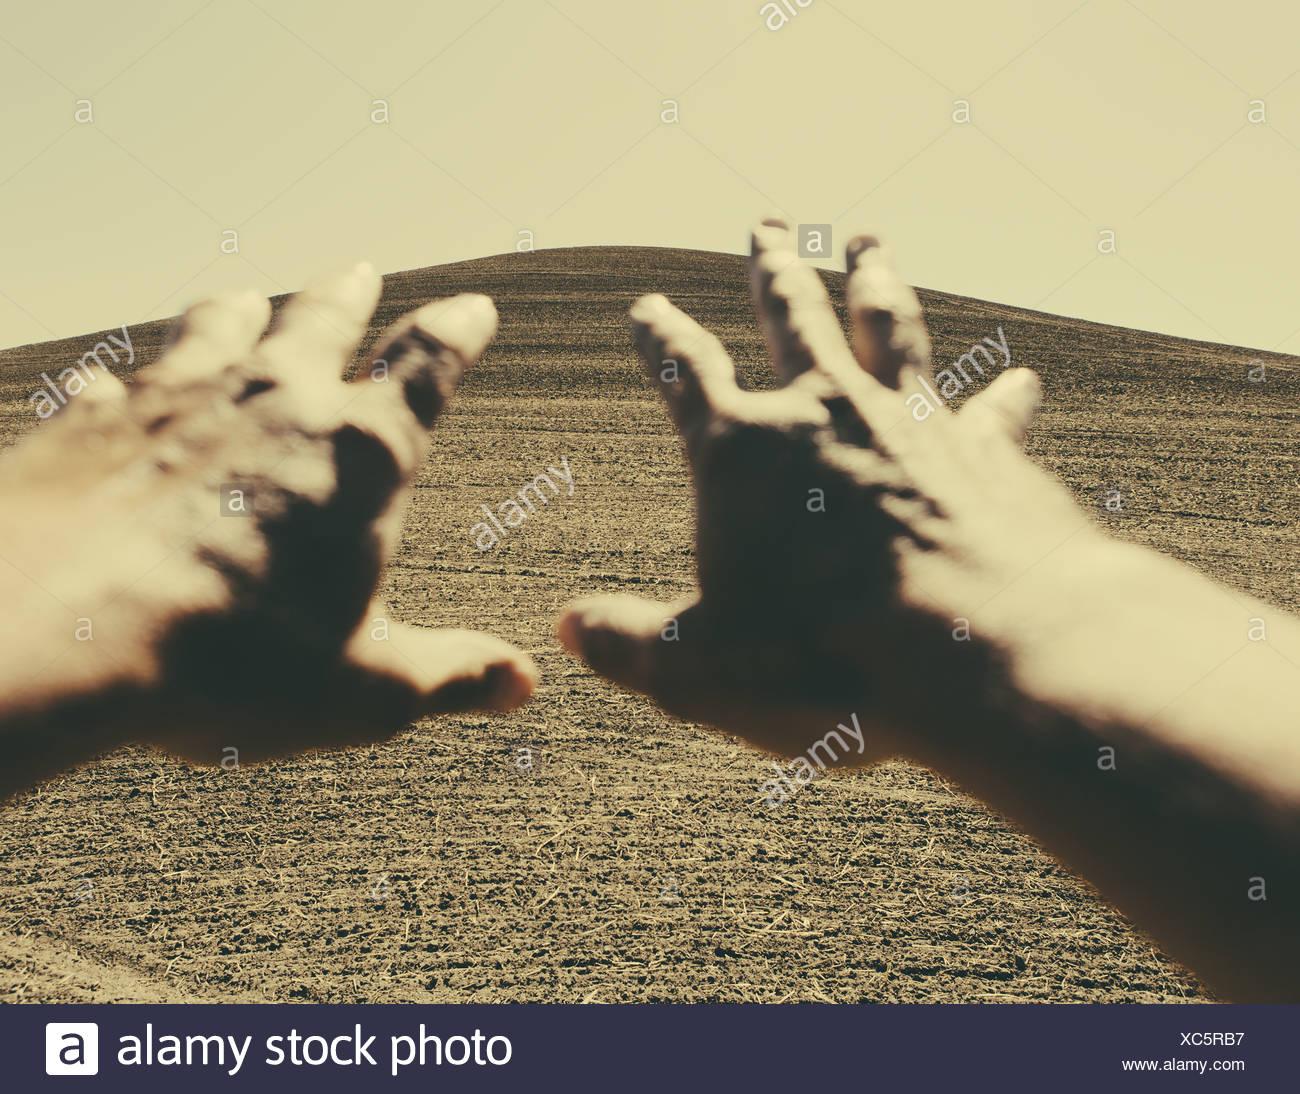 Hands extending reaching out towards ploughed farmland, near Pullman, Washington, USA - Stock Image